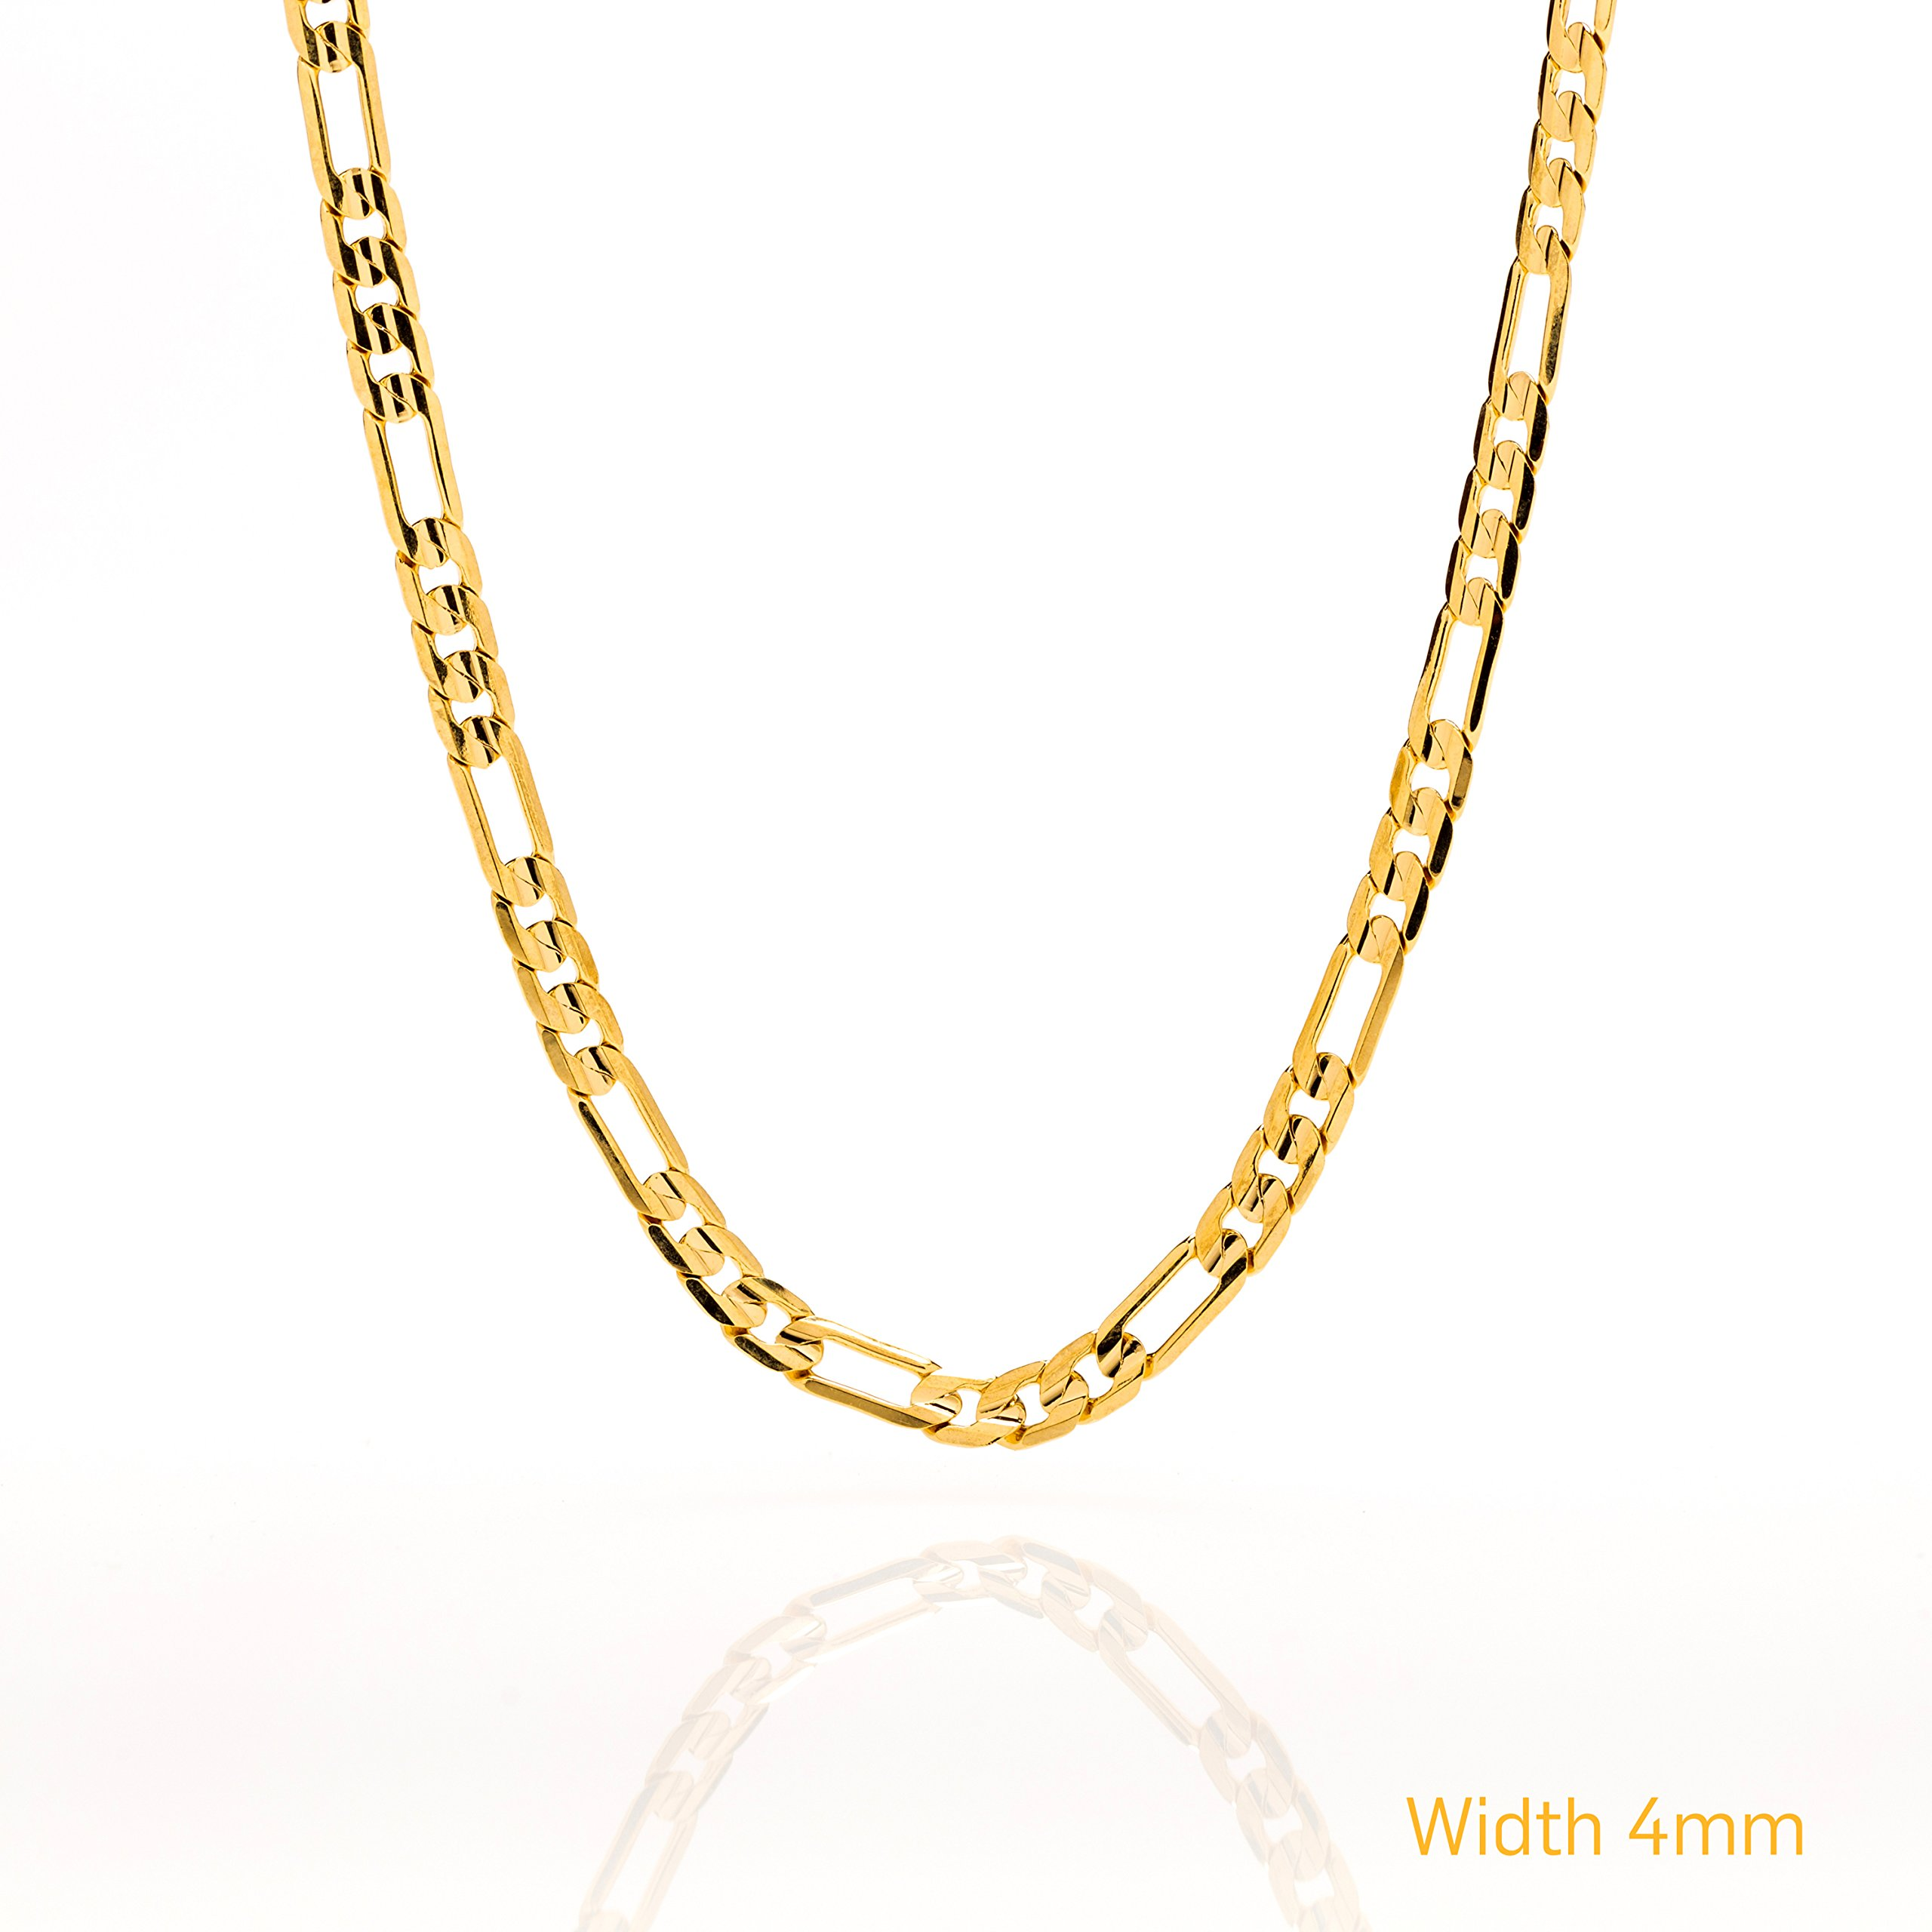 Lifetime Jewelry Figaro Chain 4MM Necklace, 24K Gold Over Semi-Precious Metals, GUARANTEED FOR LIFE, 24 Inches by Lifetime Jewelry (Image #6)